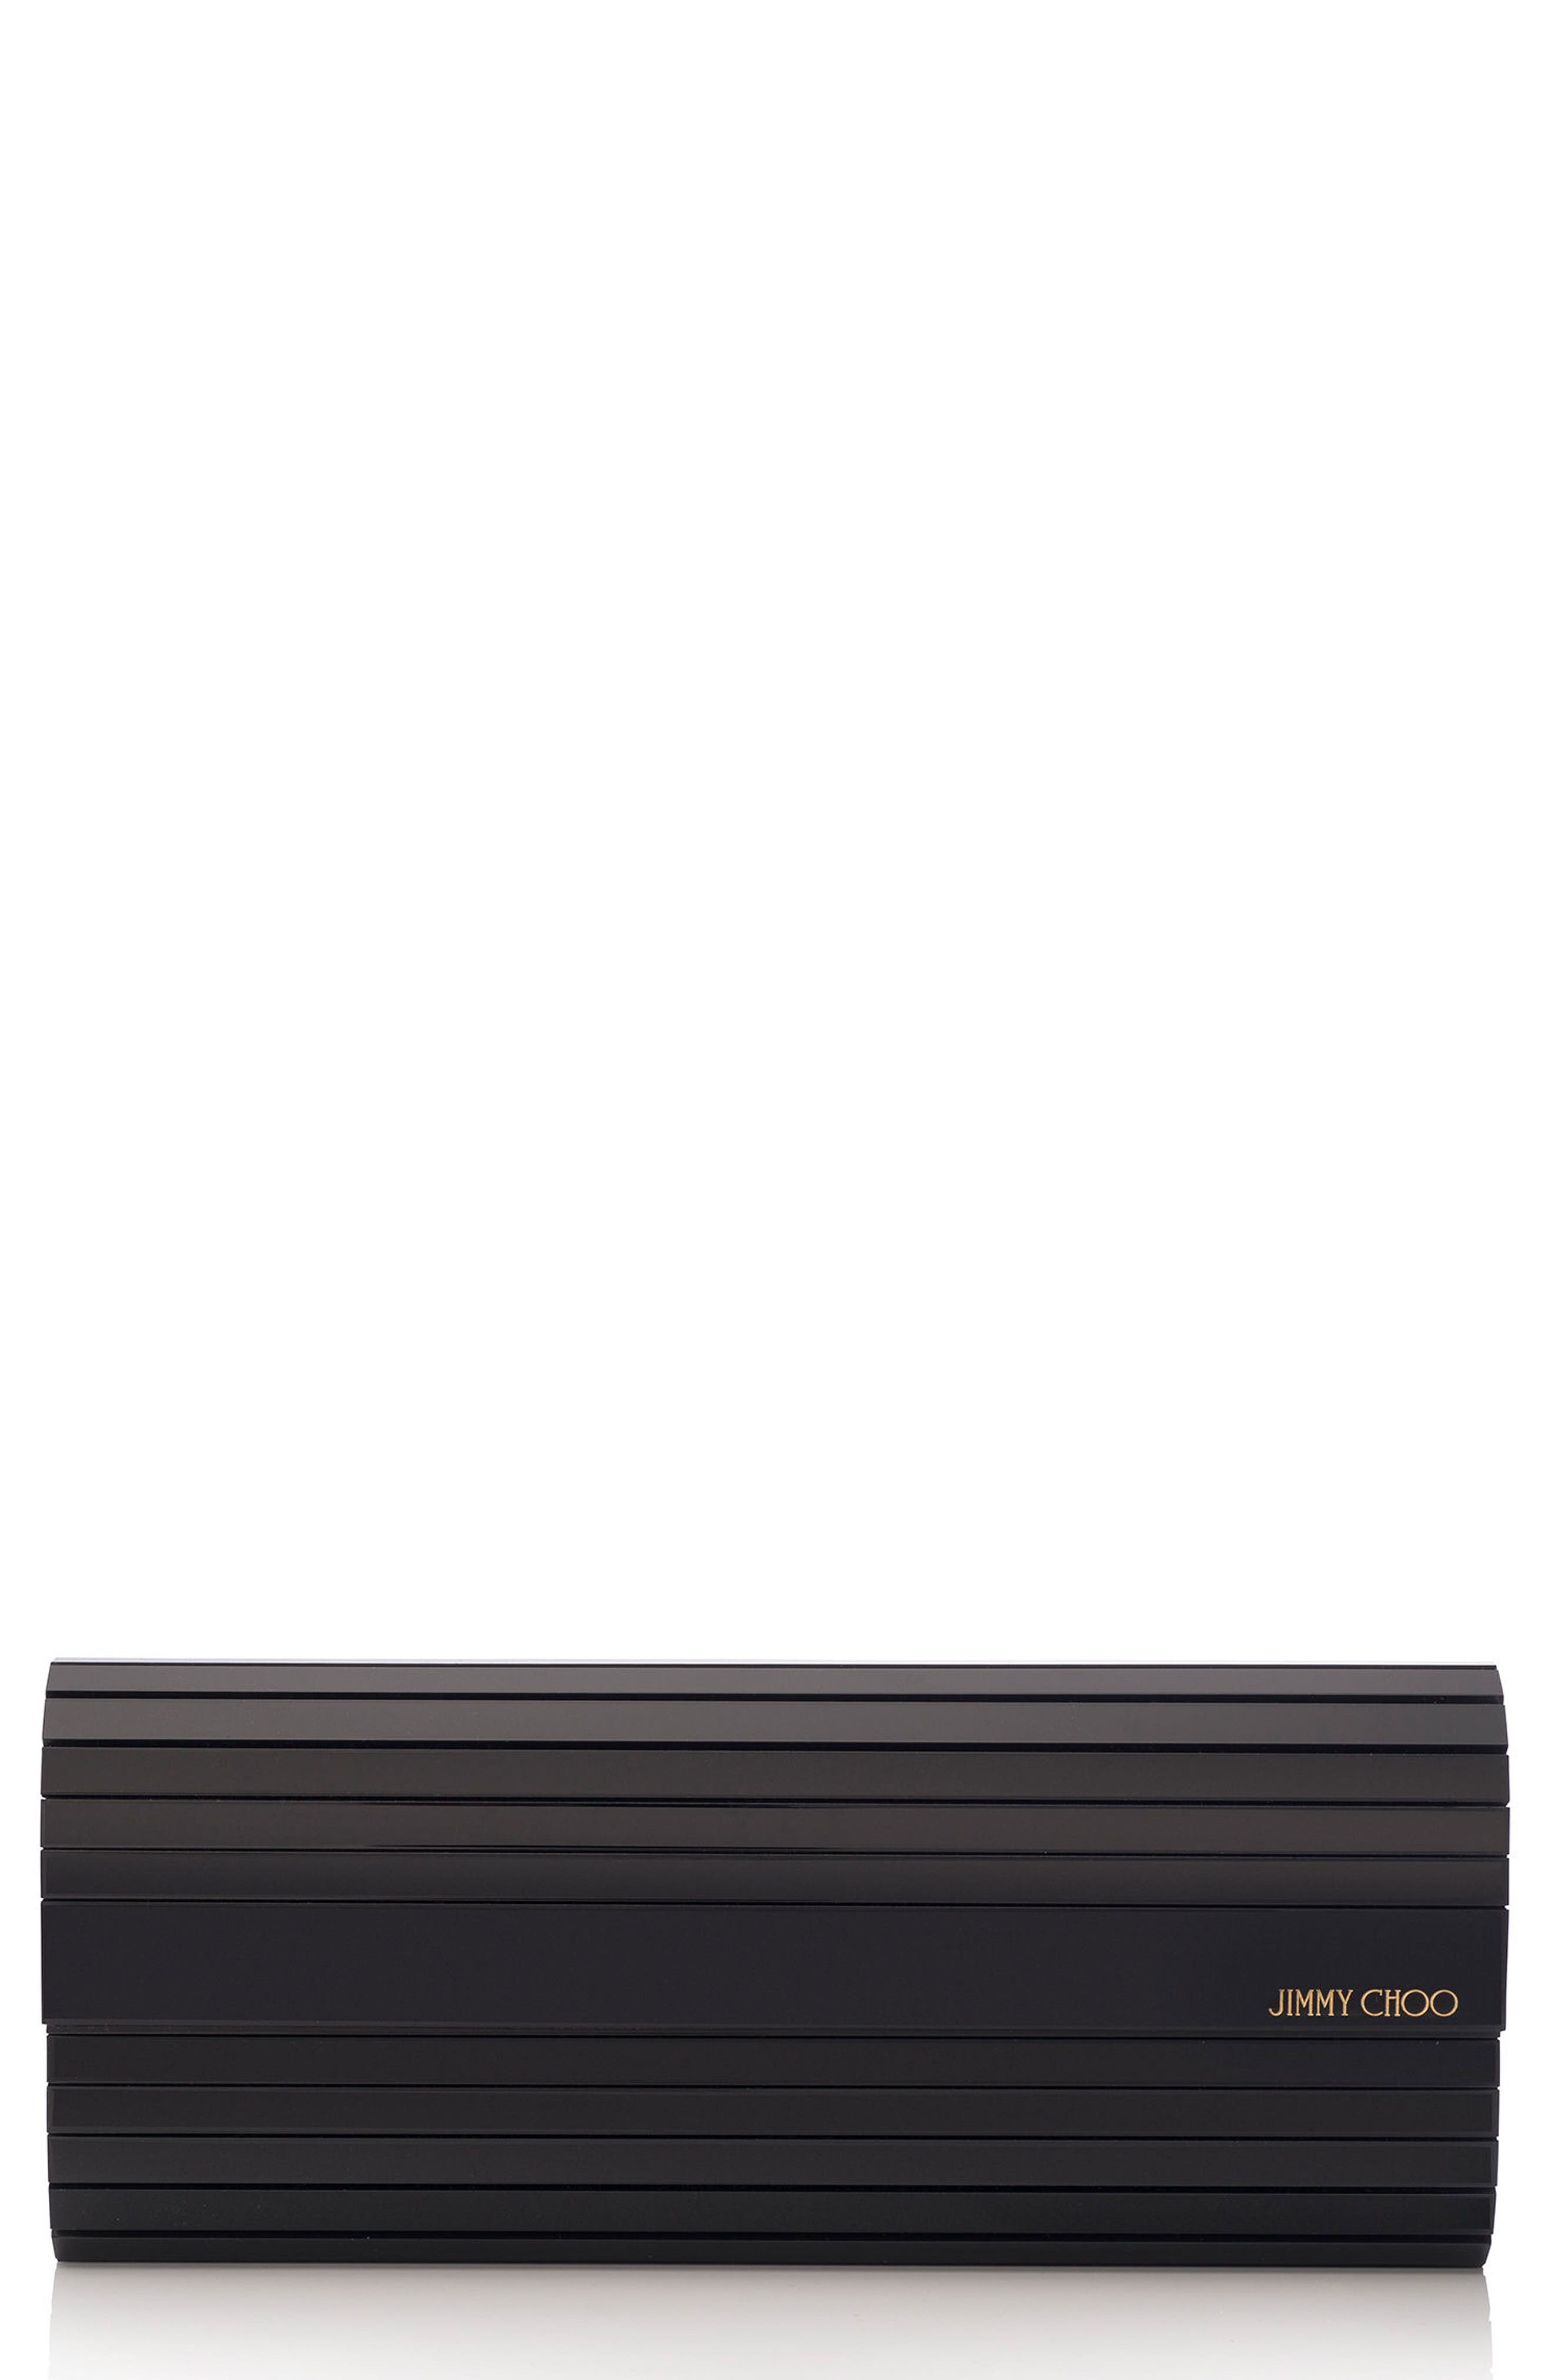 Sweetie Acrylic Clutch,                         Main,                         color, 001